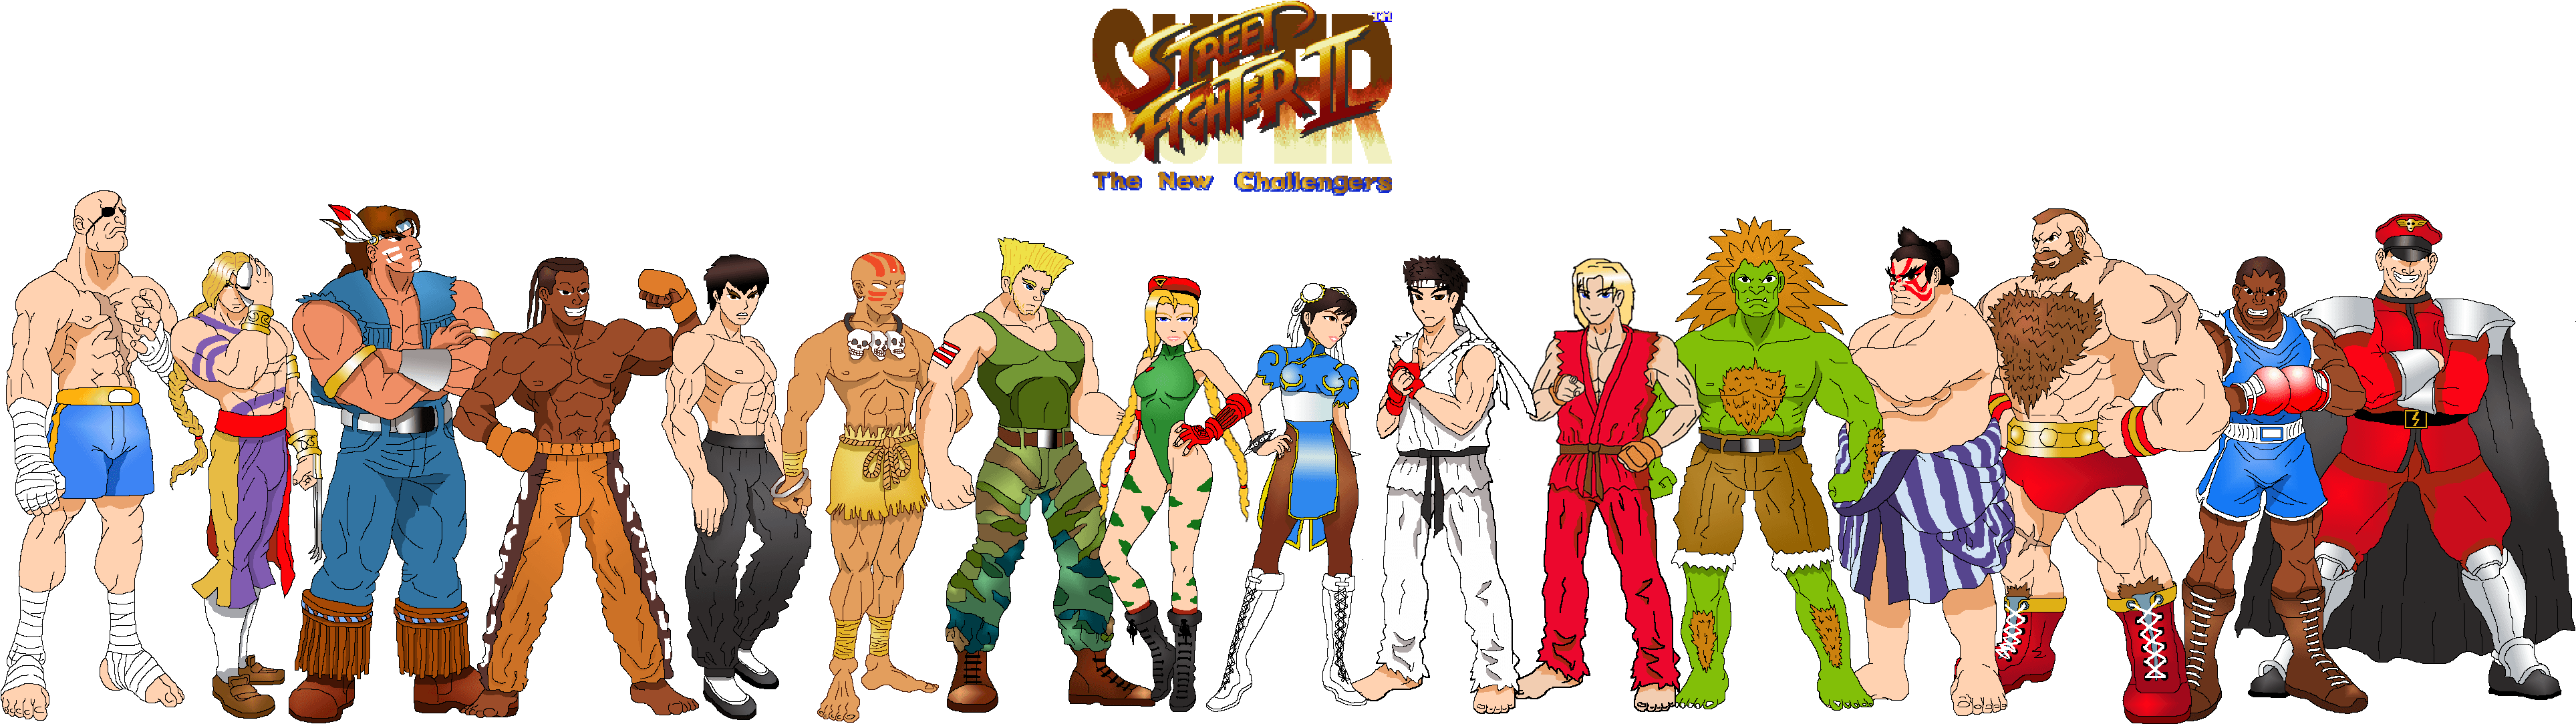 Download Street Fighter 2 Wallpapers